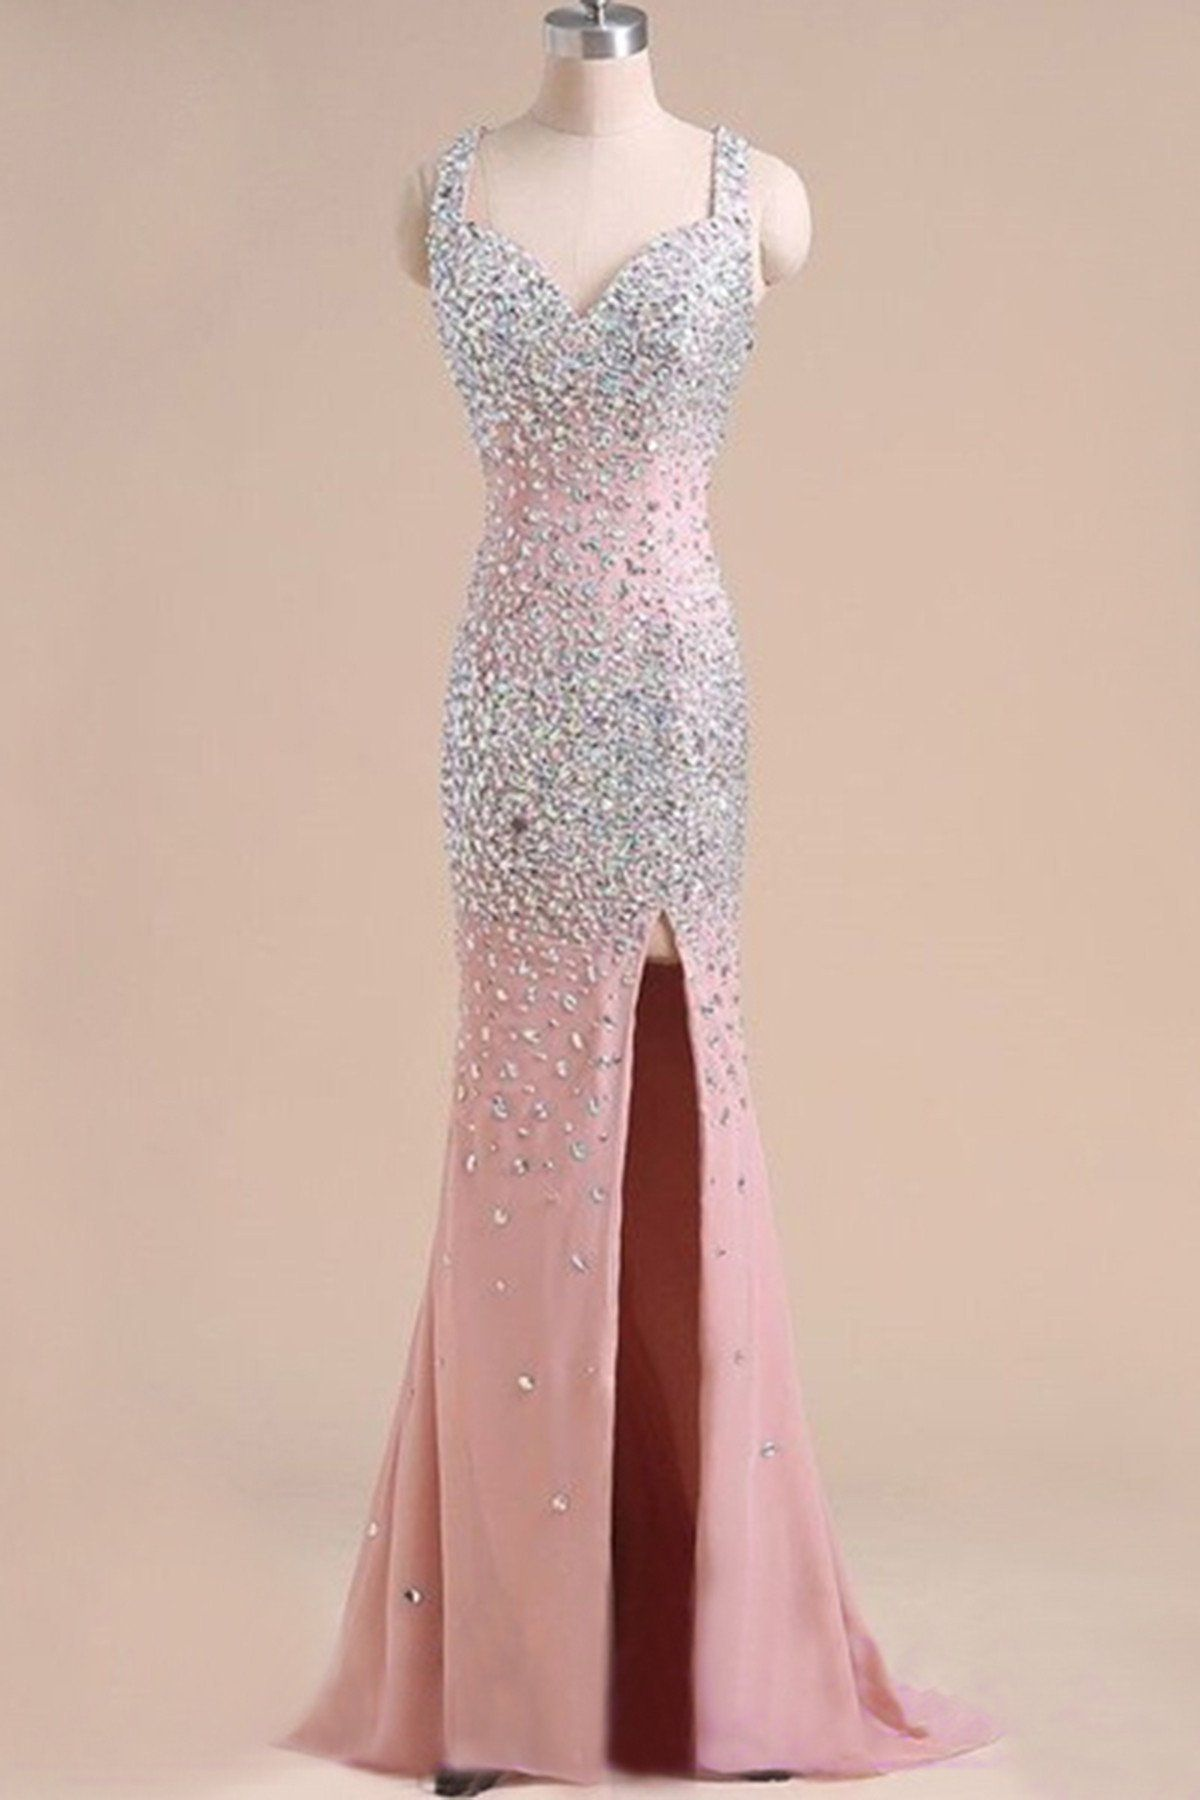 59eeeb10e21 Peach pink chiffon sequins long prom dresses with straps